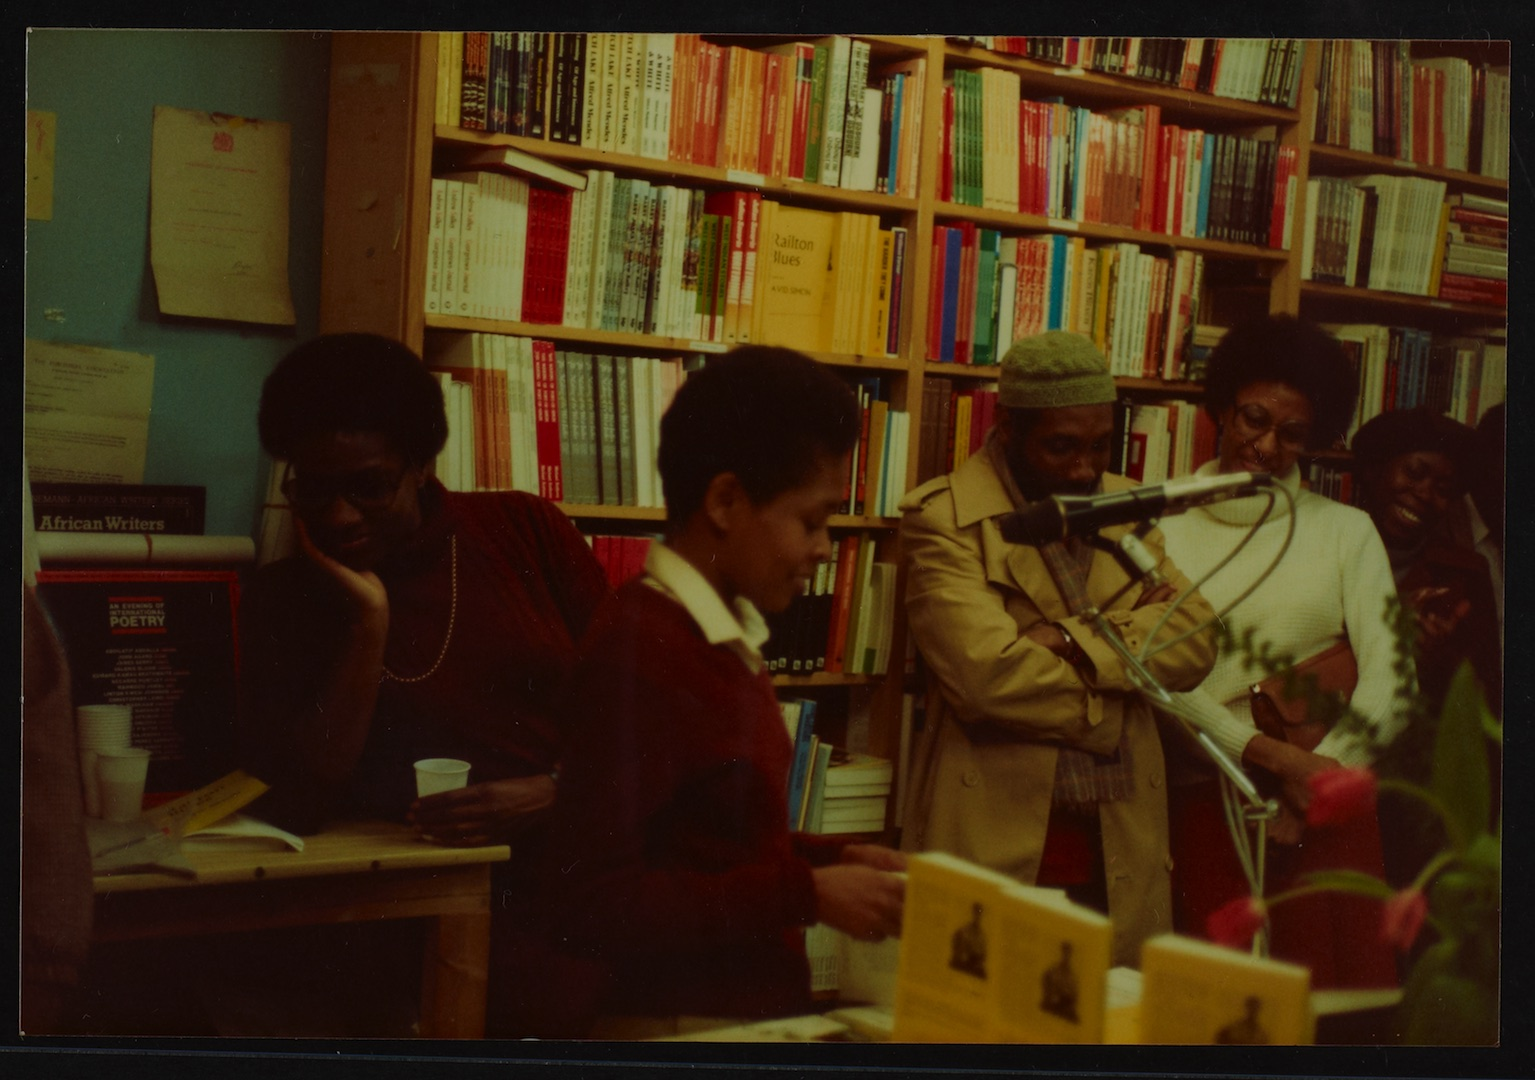 11 L to R - Ann Duncan, Valerie Bloom (performing) _ Imruh Bakari. Huntley Archives at London Metrop